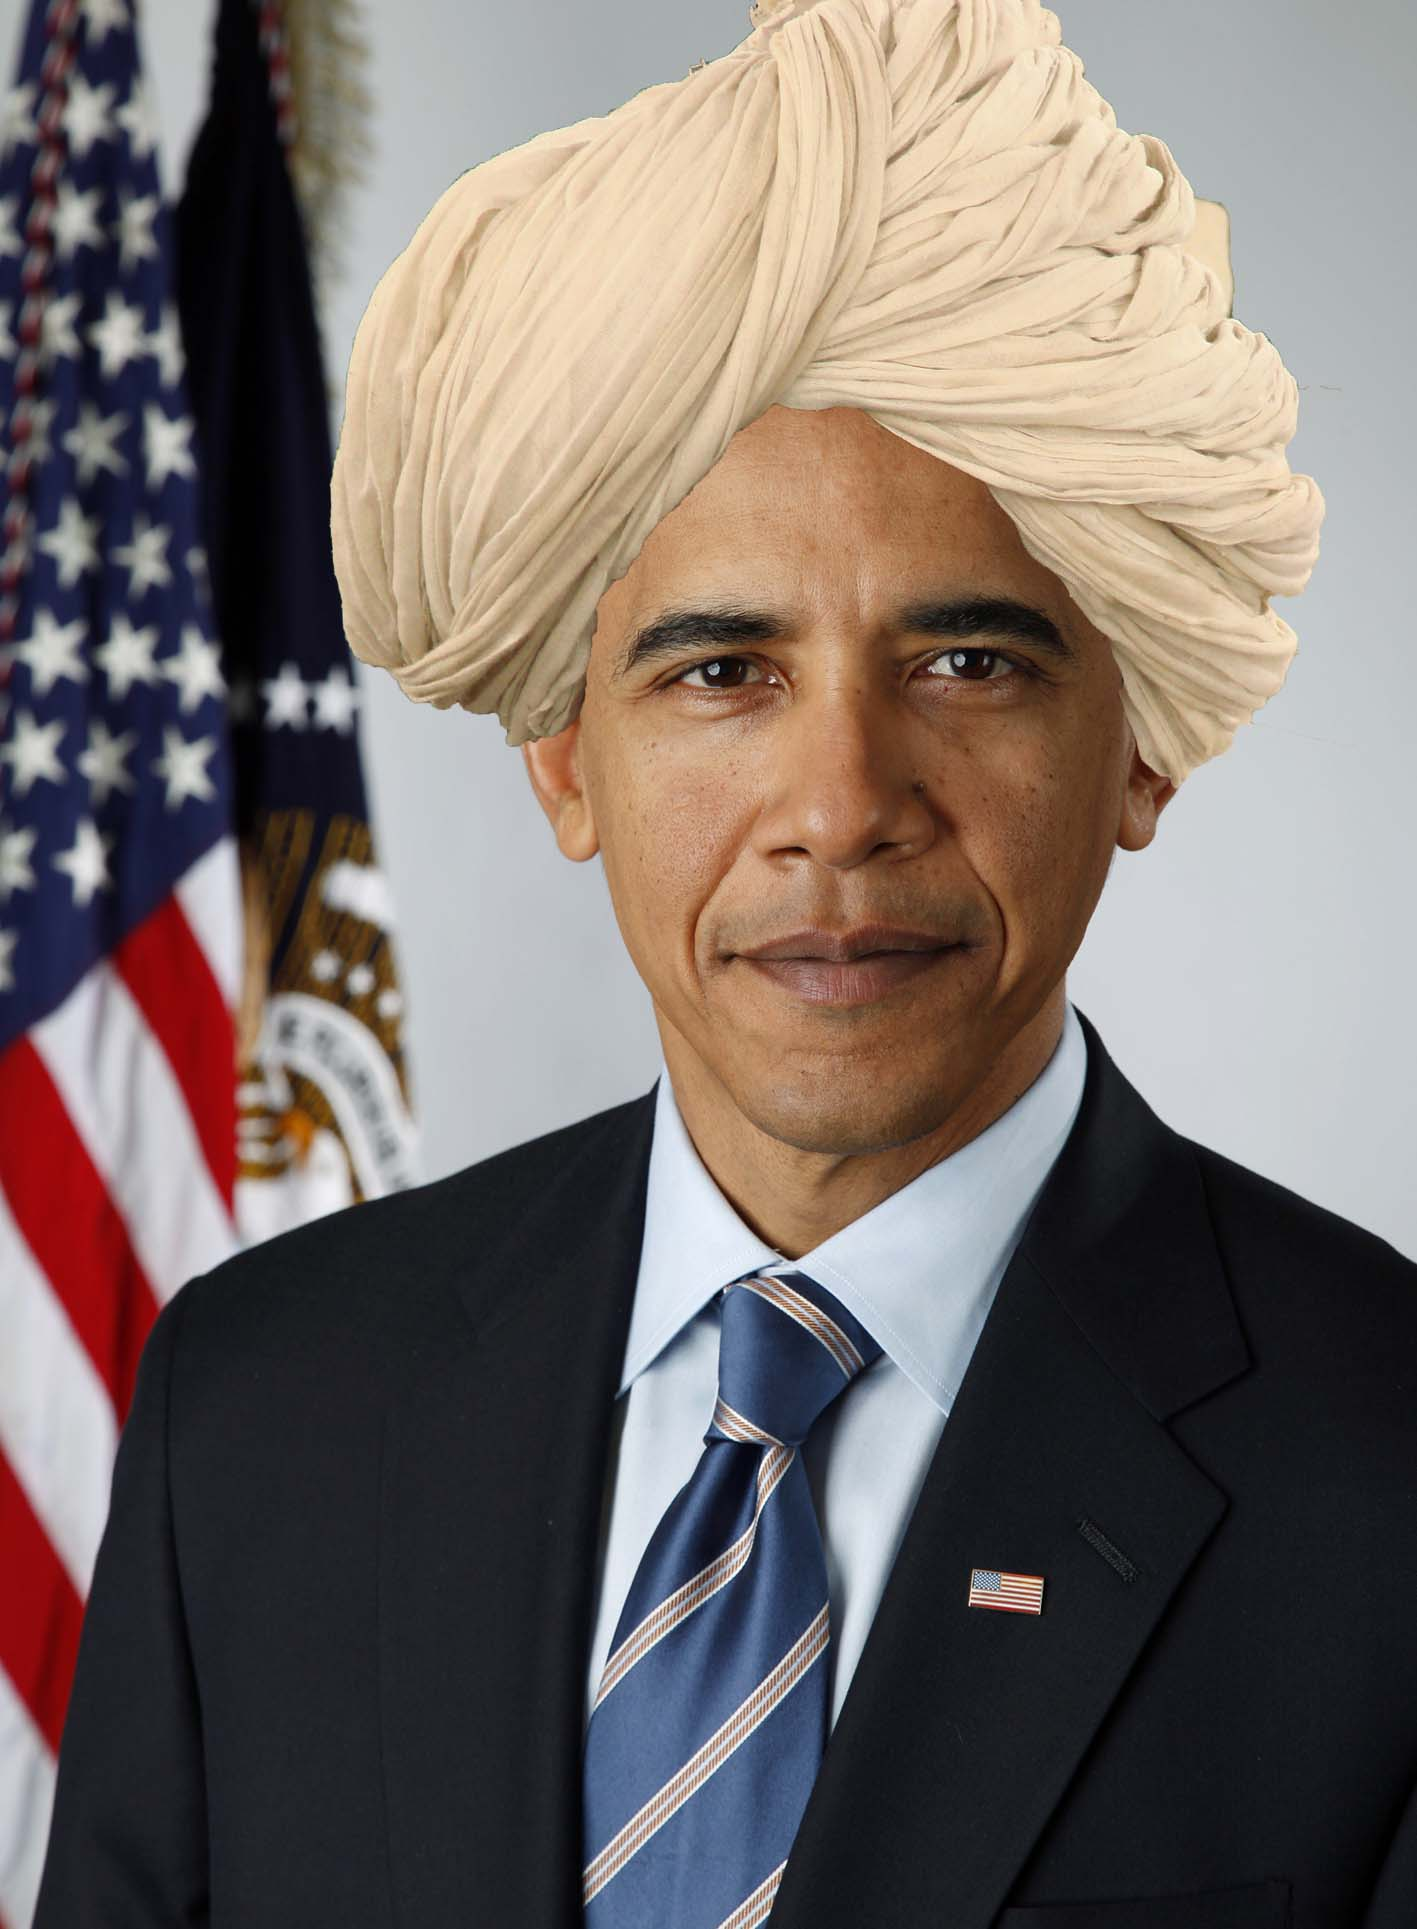 Official_portrait_of_Barack_Obama_with_Turban